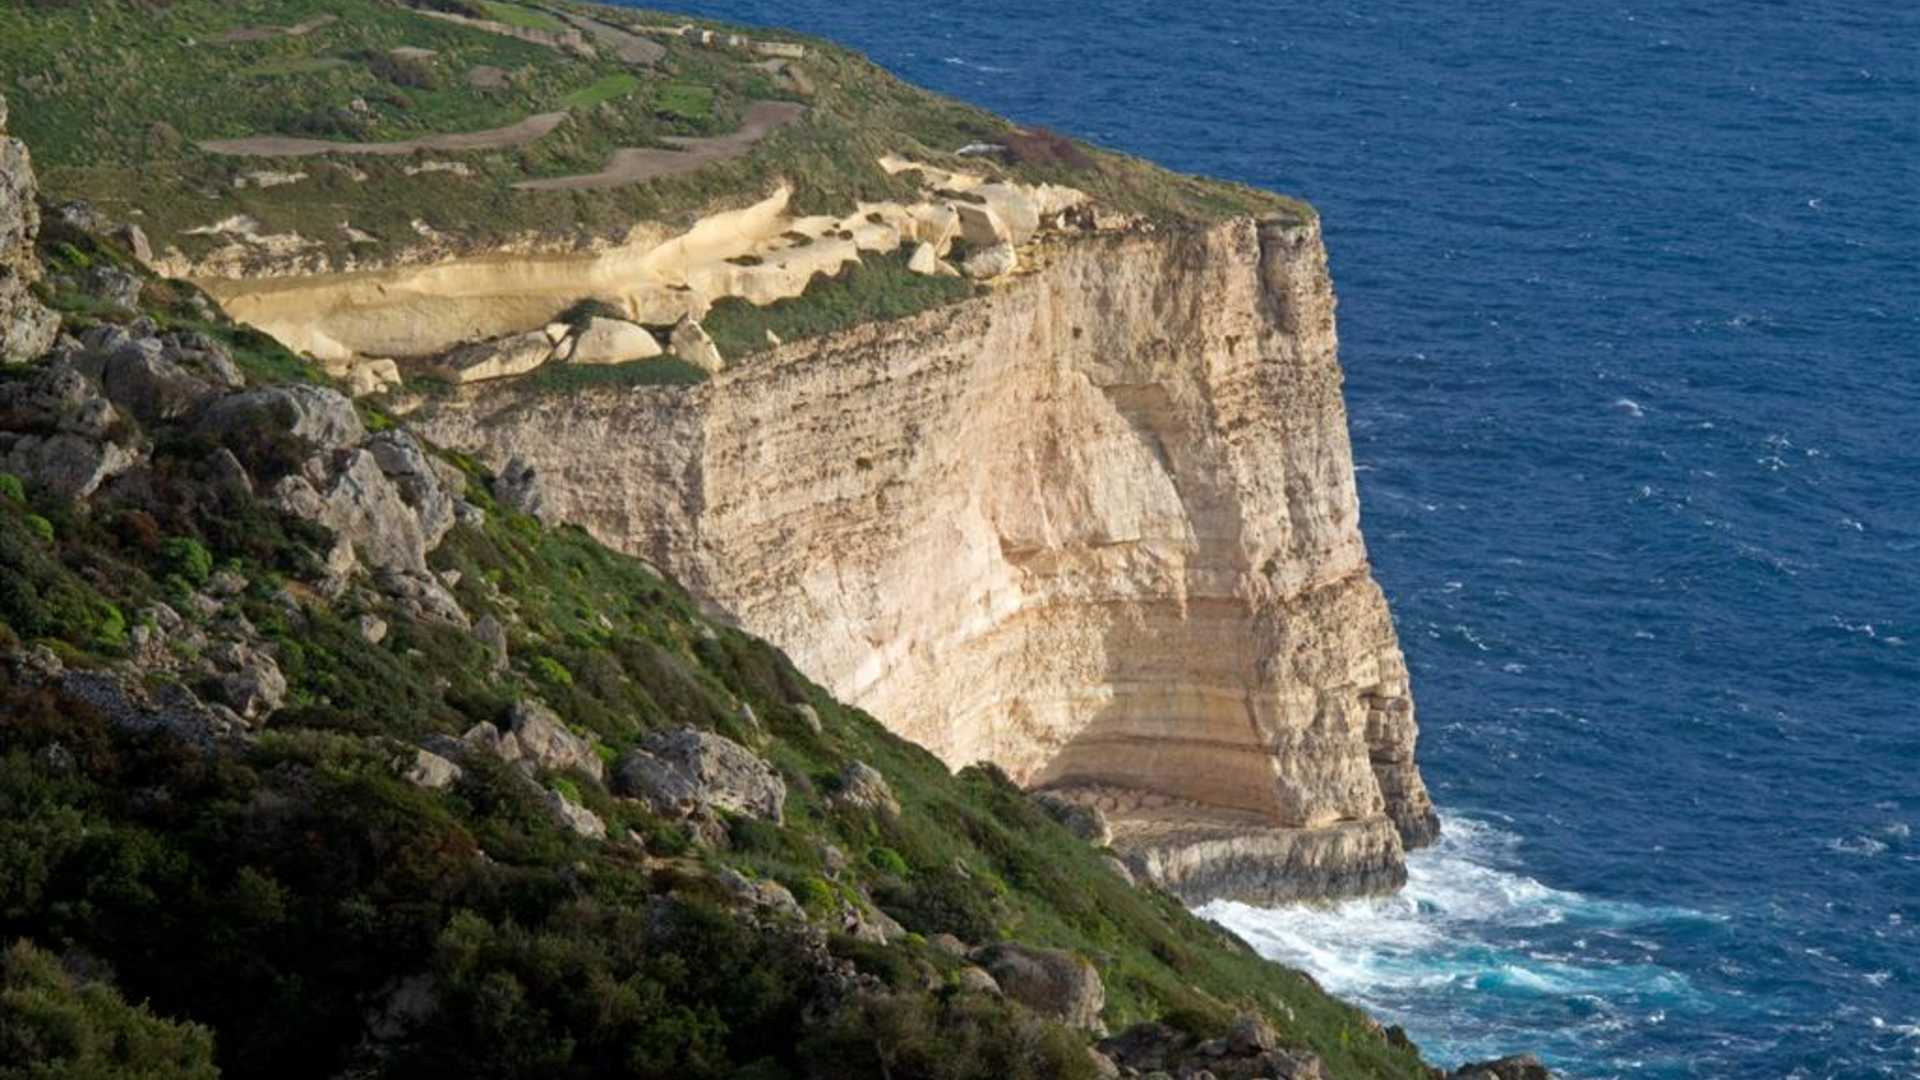 views of Dingli Cliffs